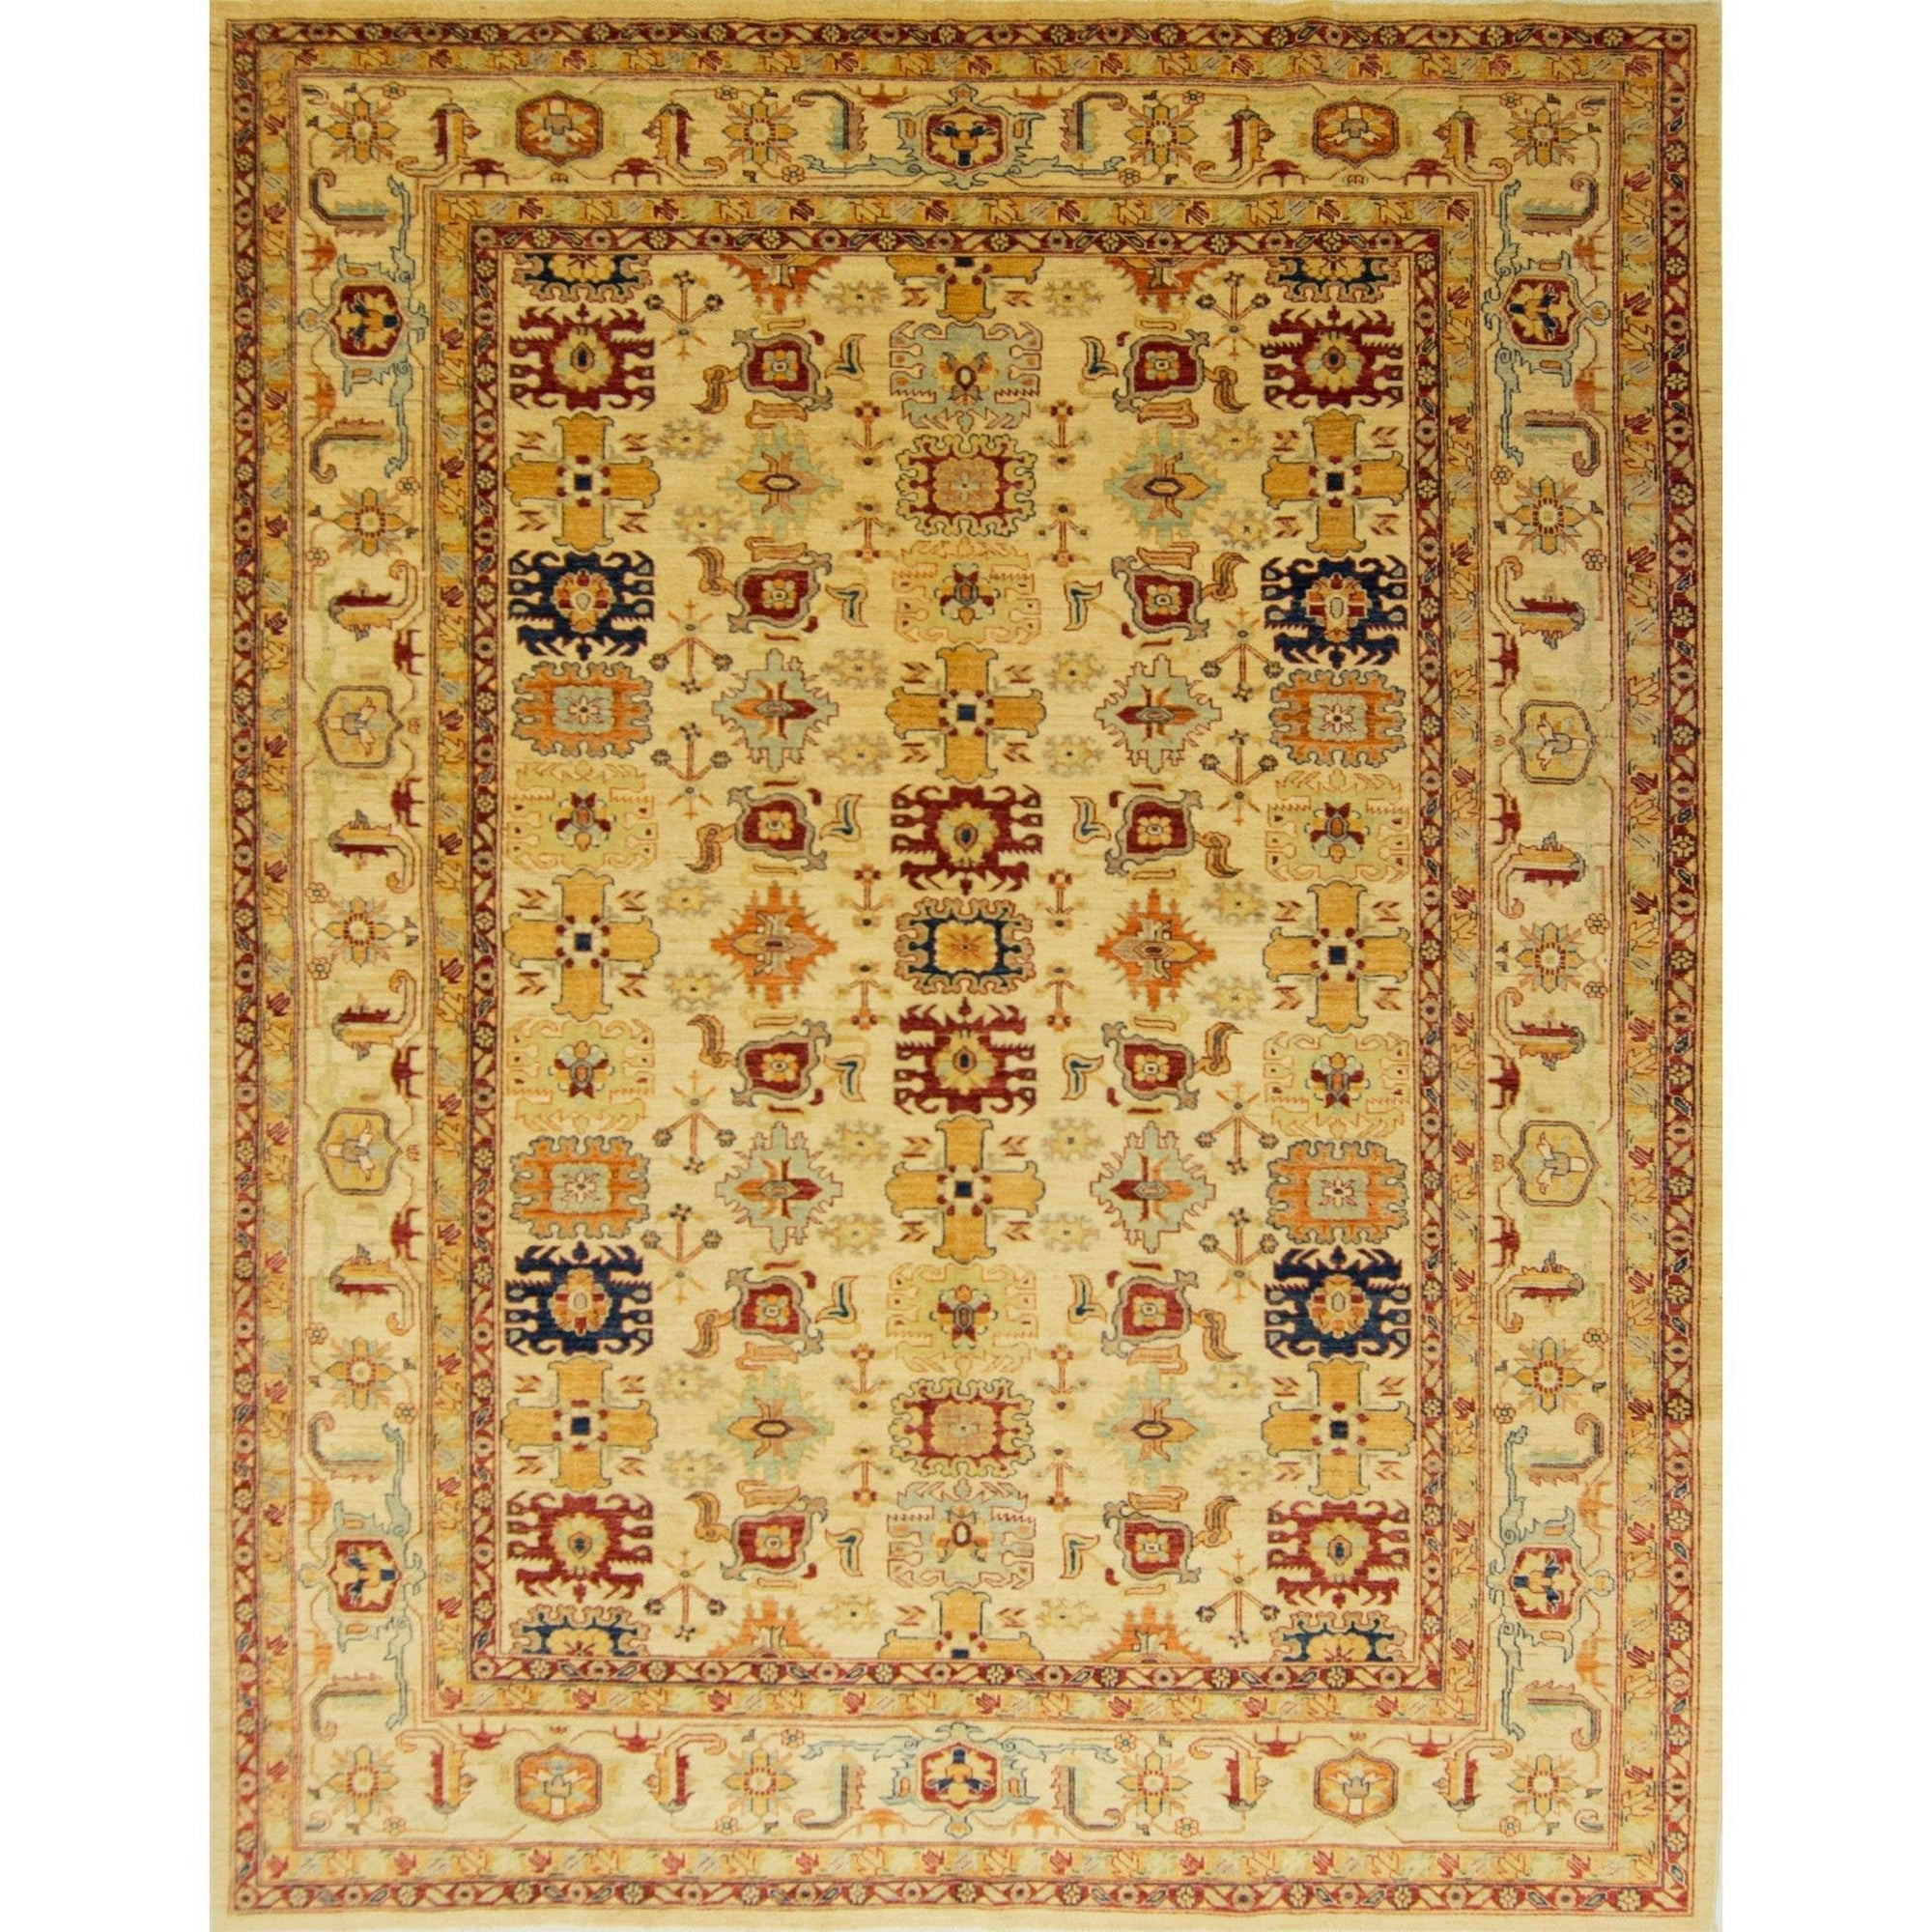 Fine Hand-knotted Wool Heriz Rug 260cm x 352cm Persian-Rug | House-of-Haghi | NewMarket | Auckland | NZ | Handmade Persian Rugs | Hand Knotted Persian Rugs